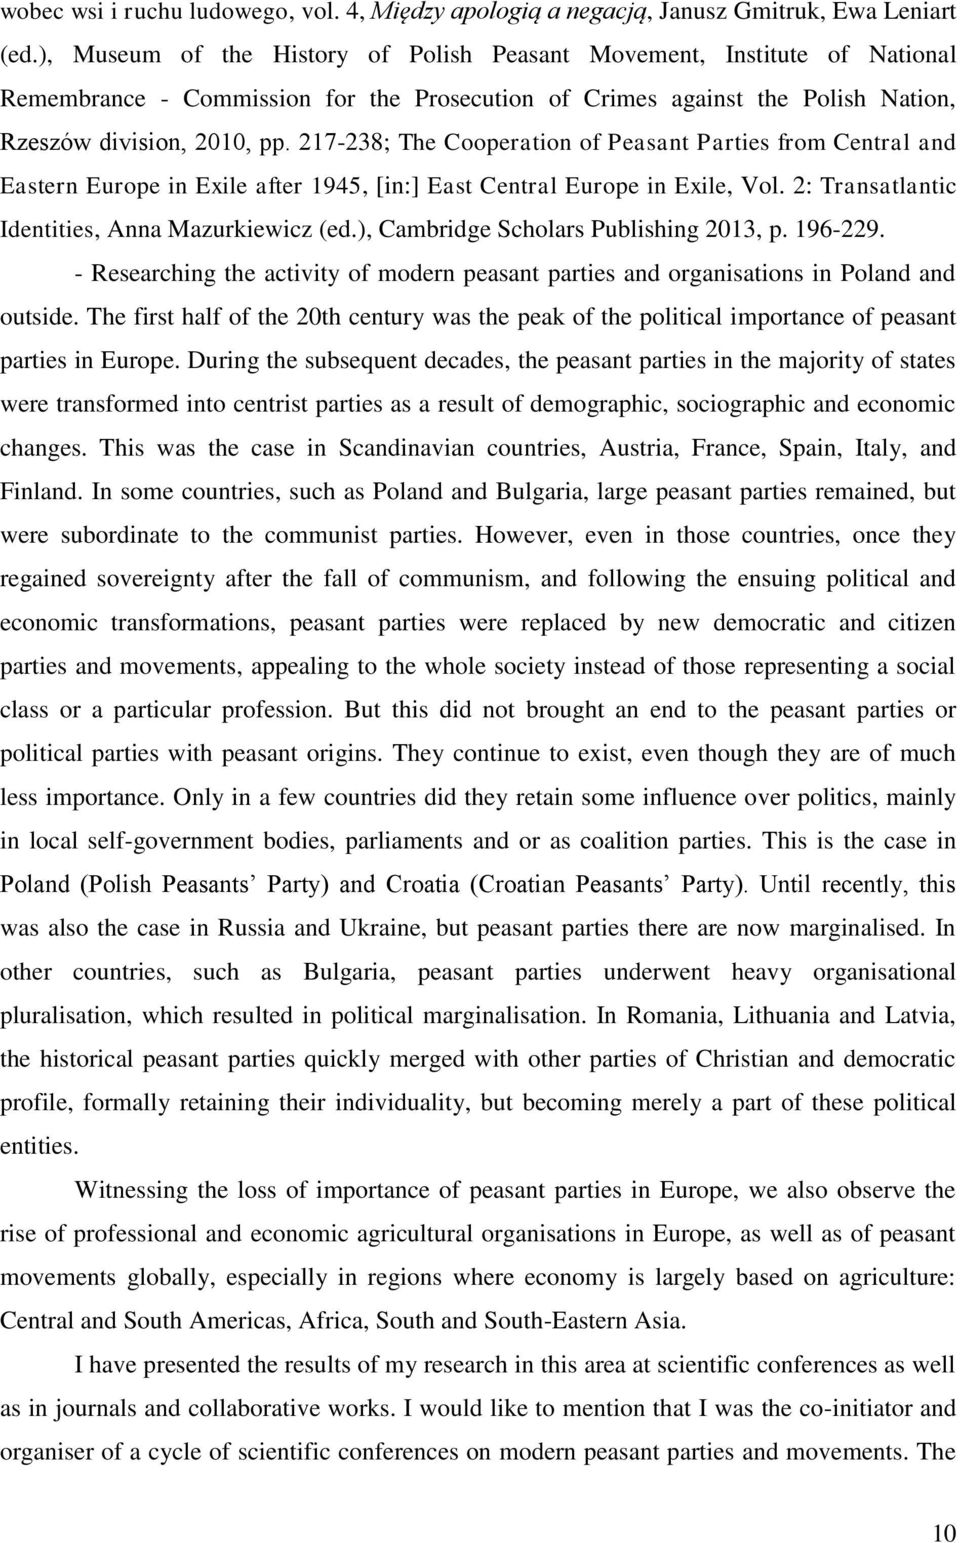 217-238; The Cooperation of Peasant Parties from Central and Eastern Europe in Exile after 1945, [in:] East Central Europe in Exile, Vol. 2: Transatlantic Identities, Anna Mazurkiewicz (ed.